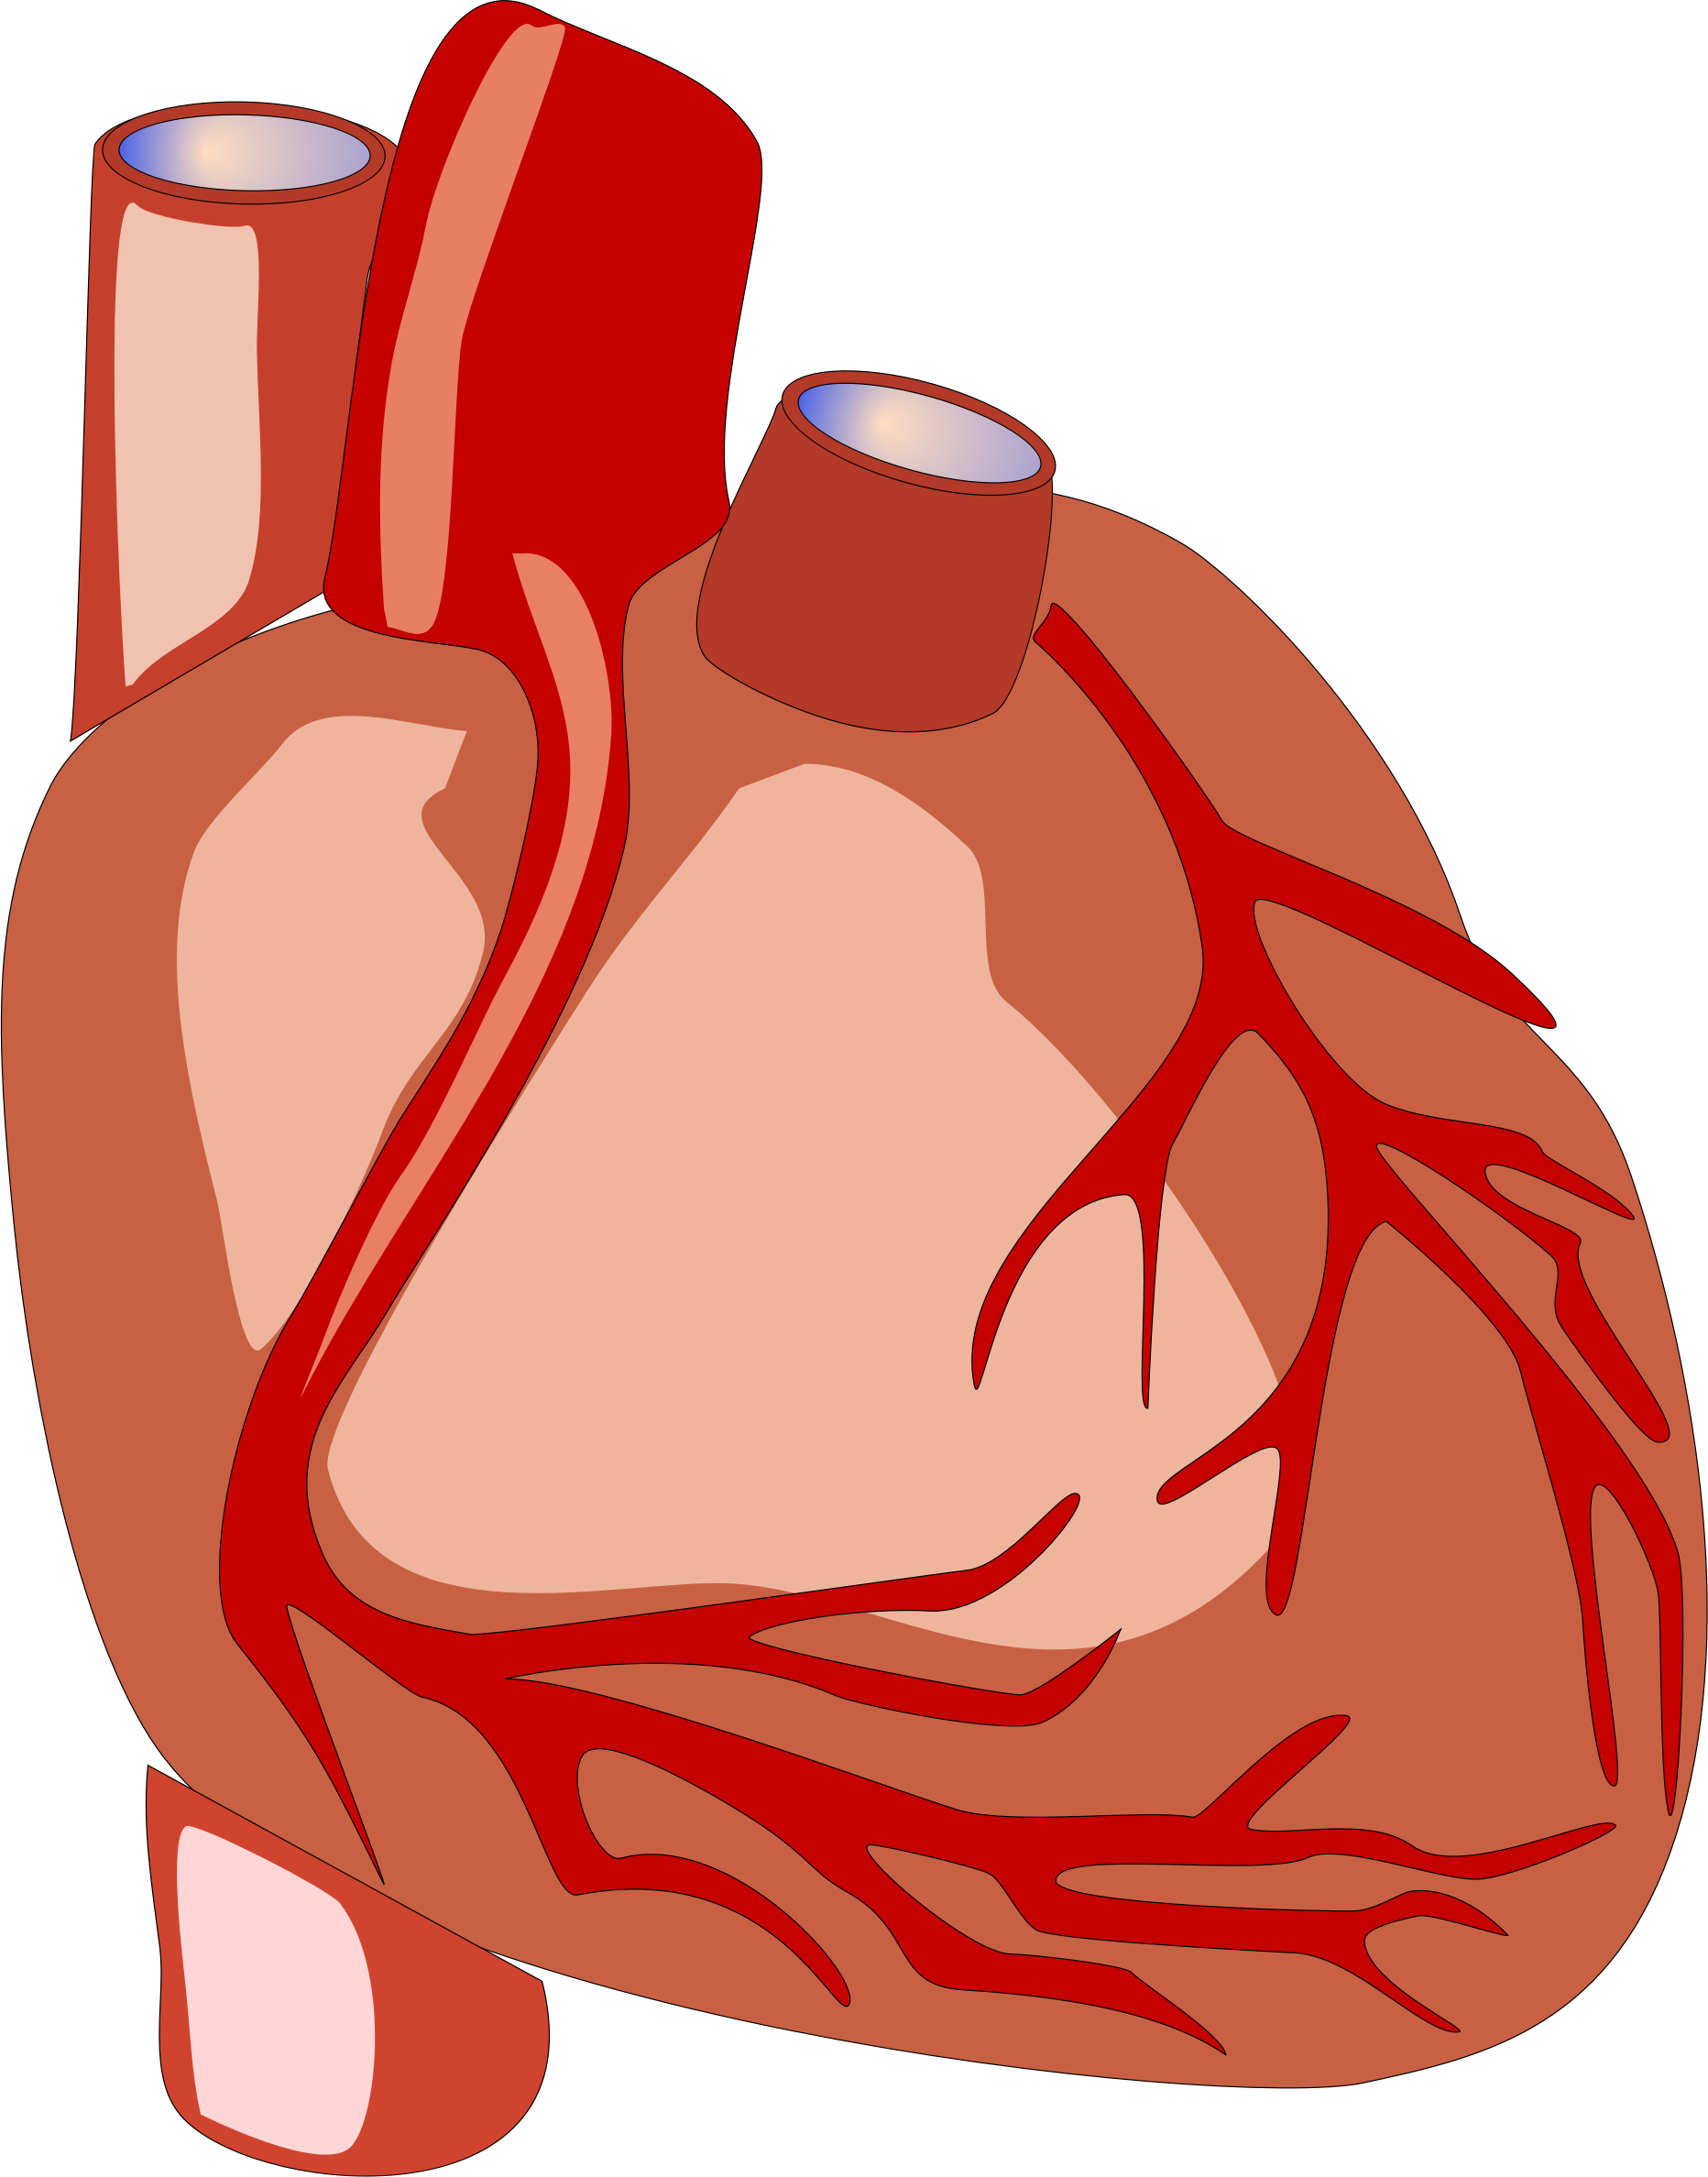 Human Heart vector file image.